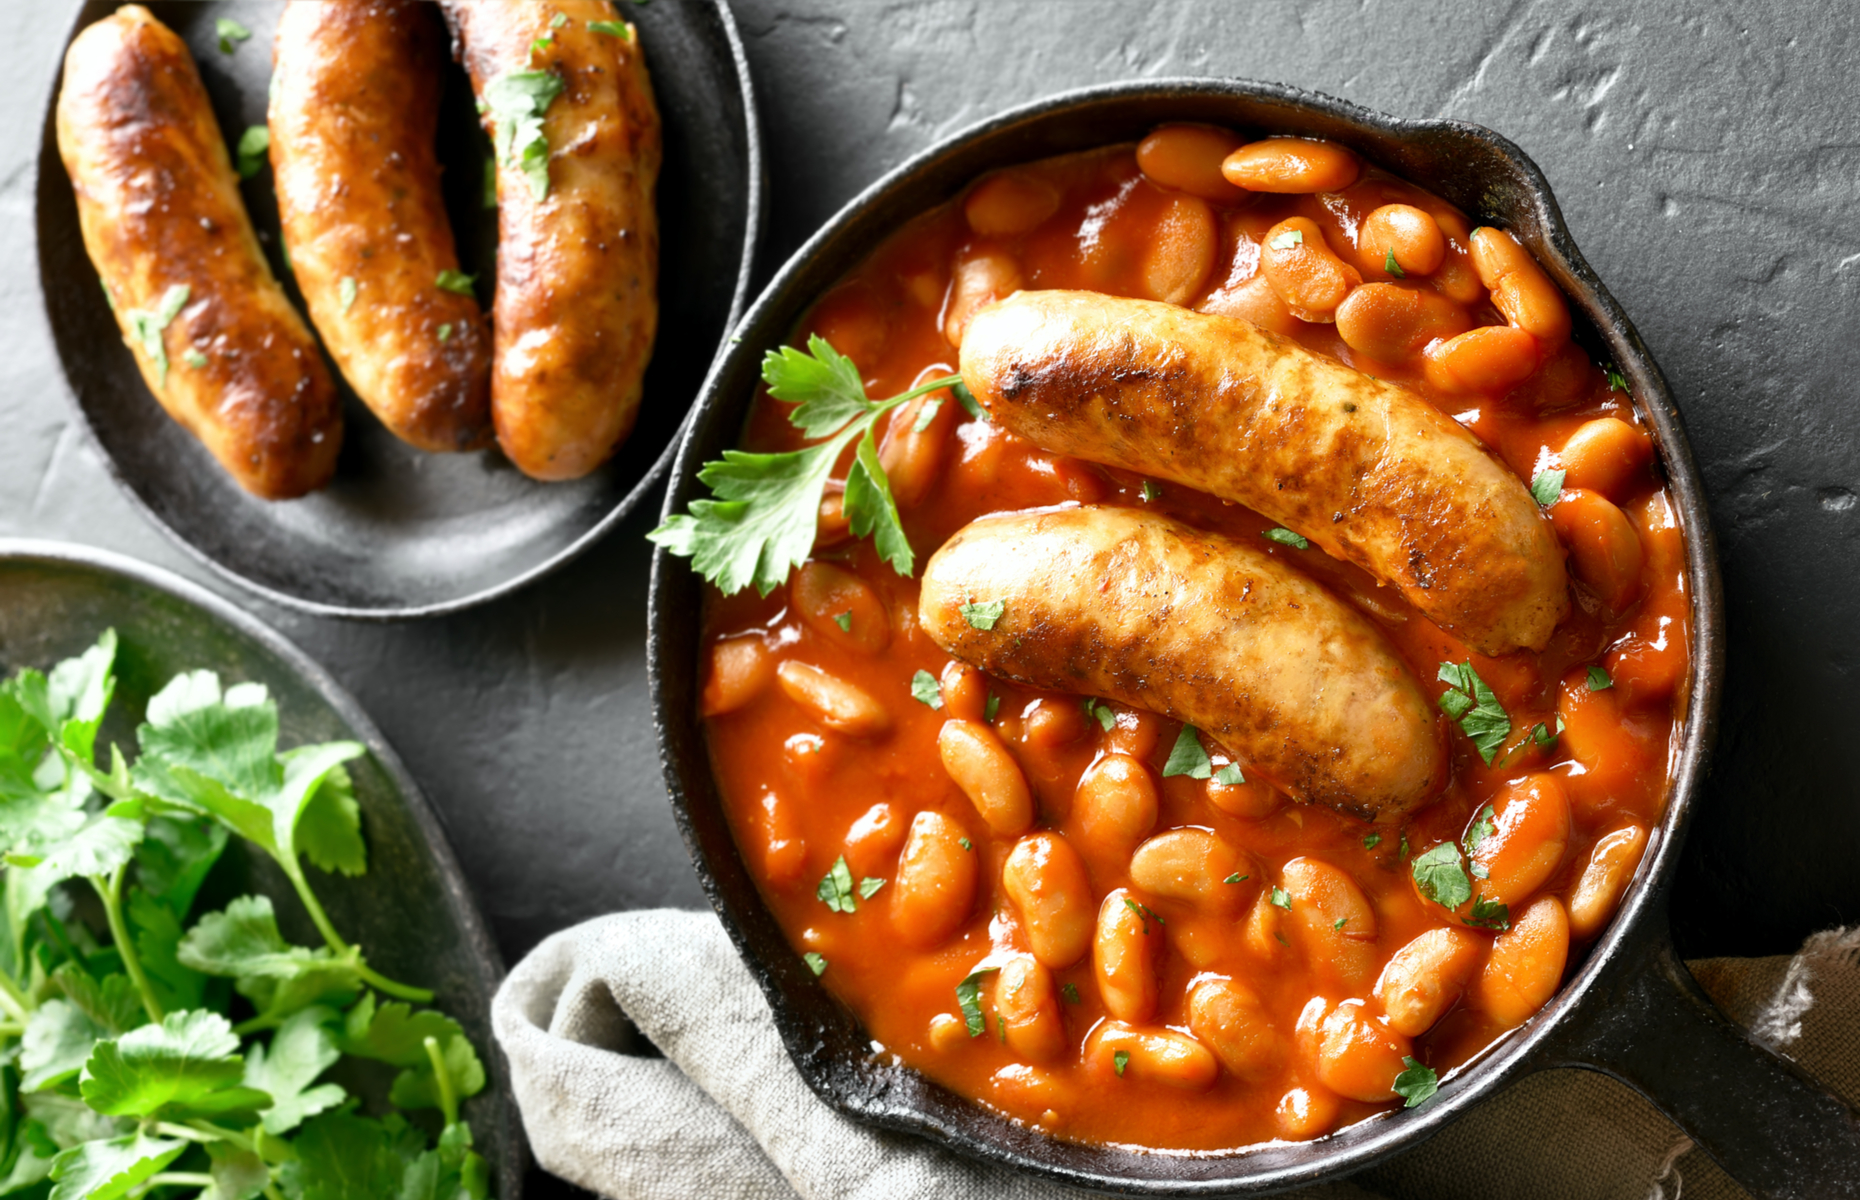 Beans and sausages in a skillet (Image: Tatiana Volgutova/Shutterstock)